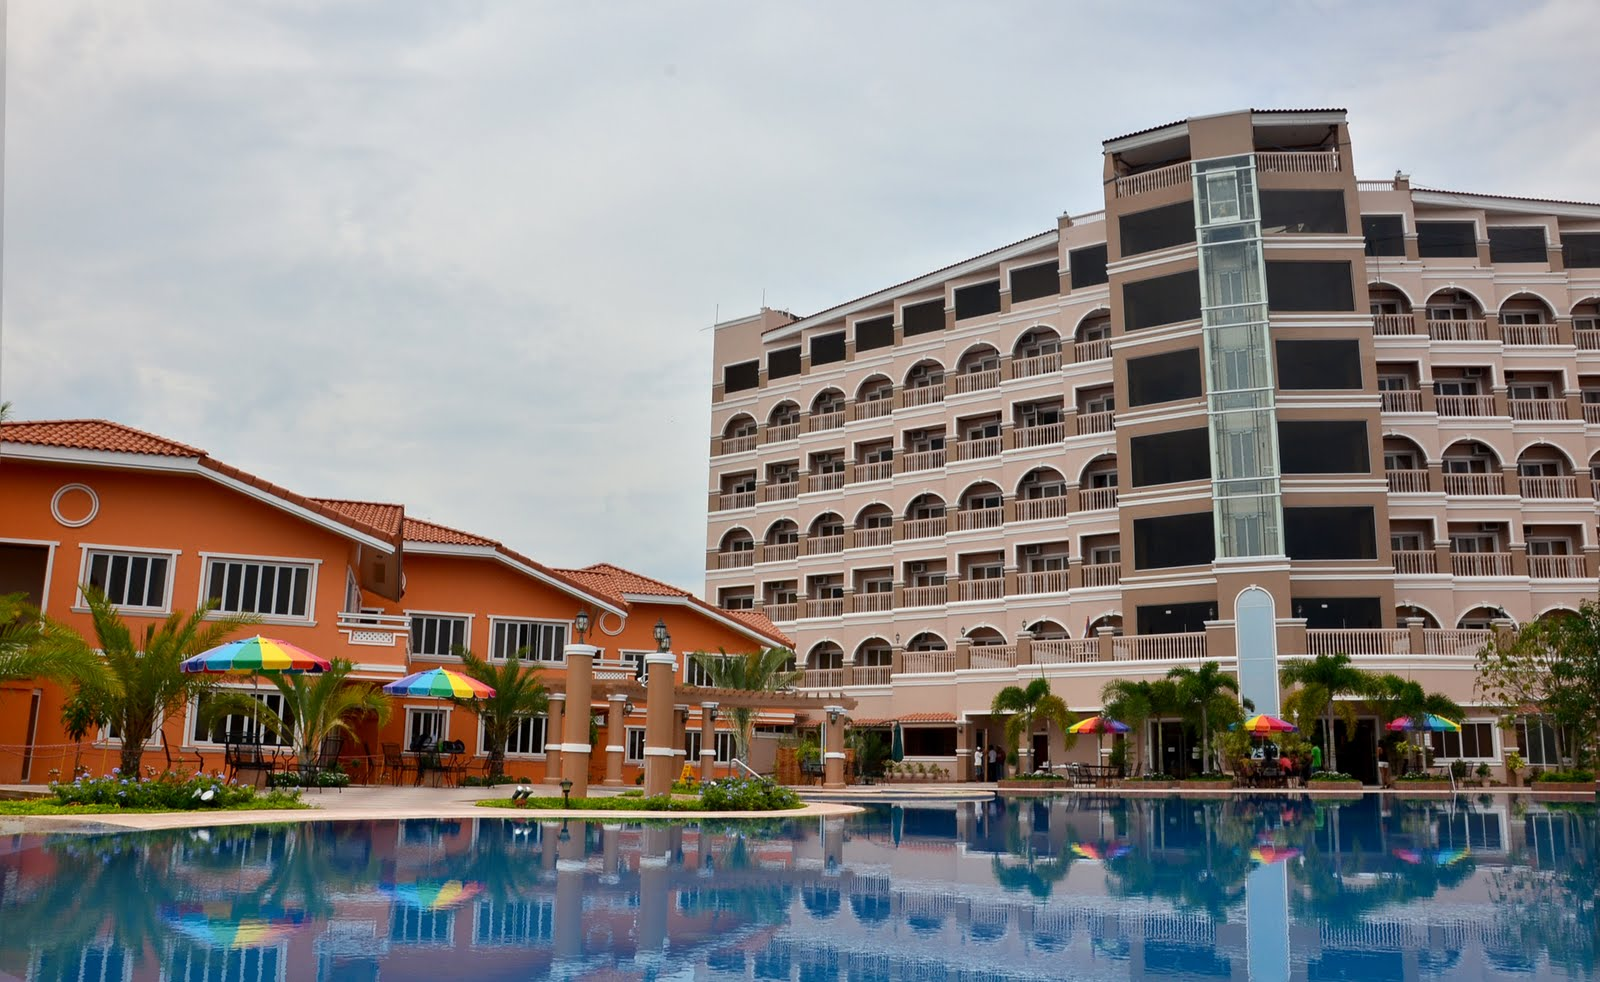 Welcome to Estrellas de Mendoza Playa Resort in Laiya Batangas! This